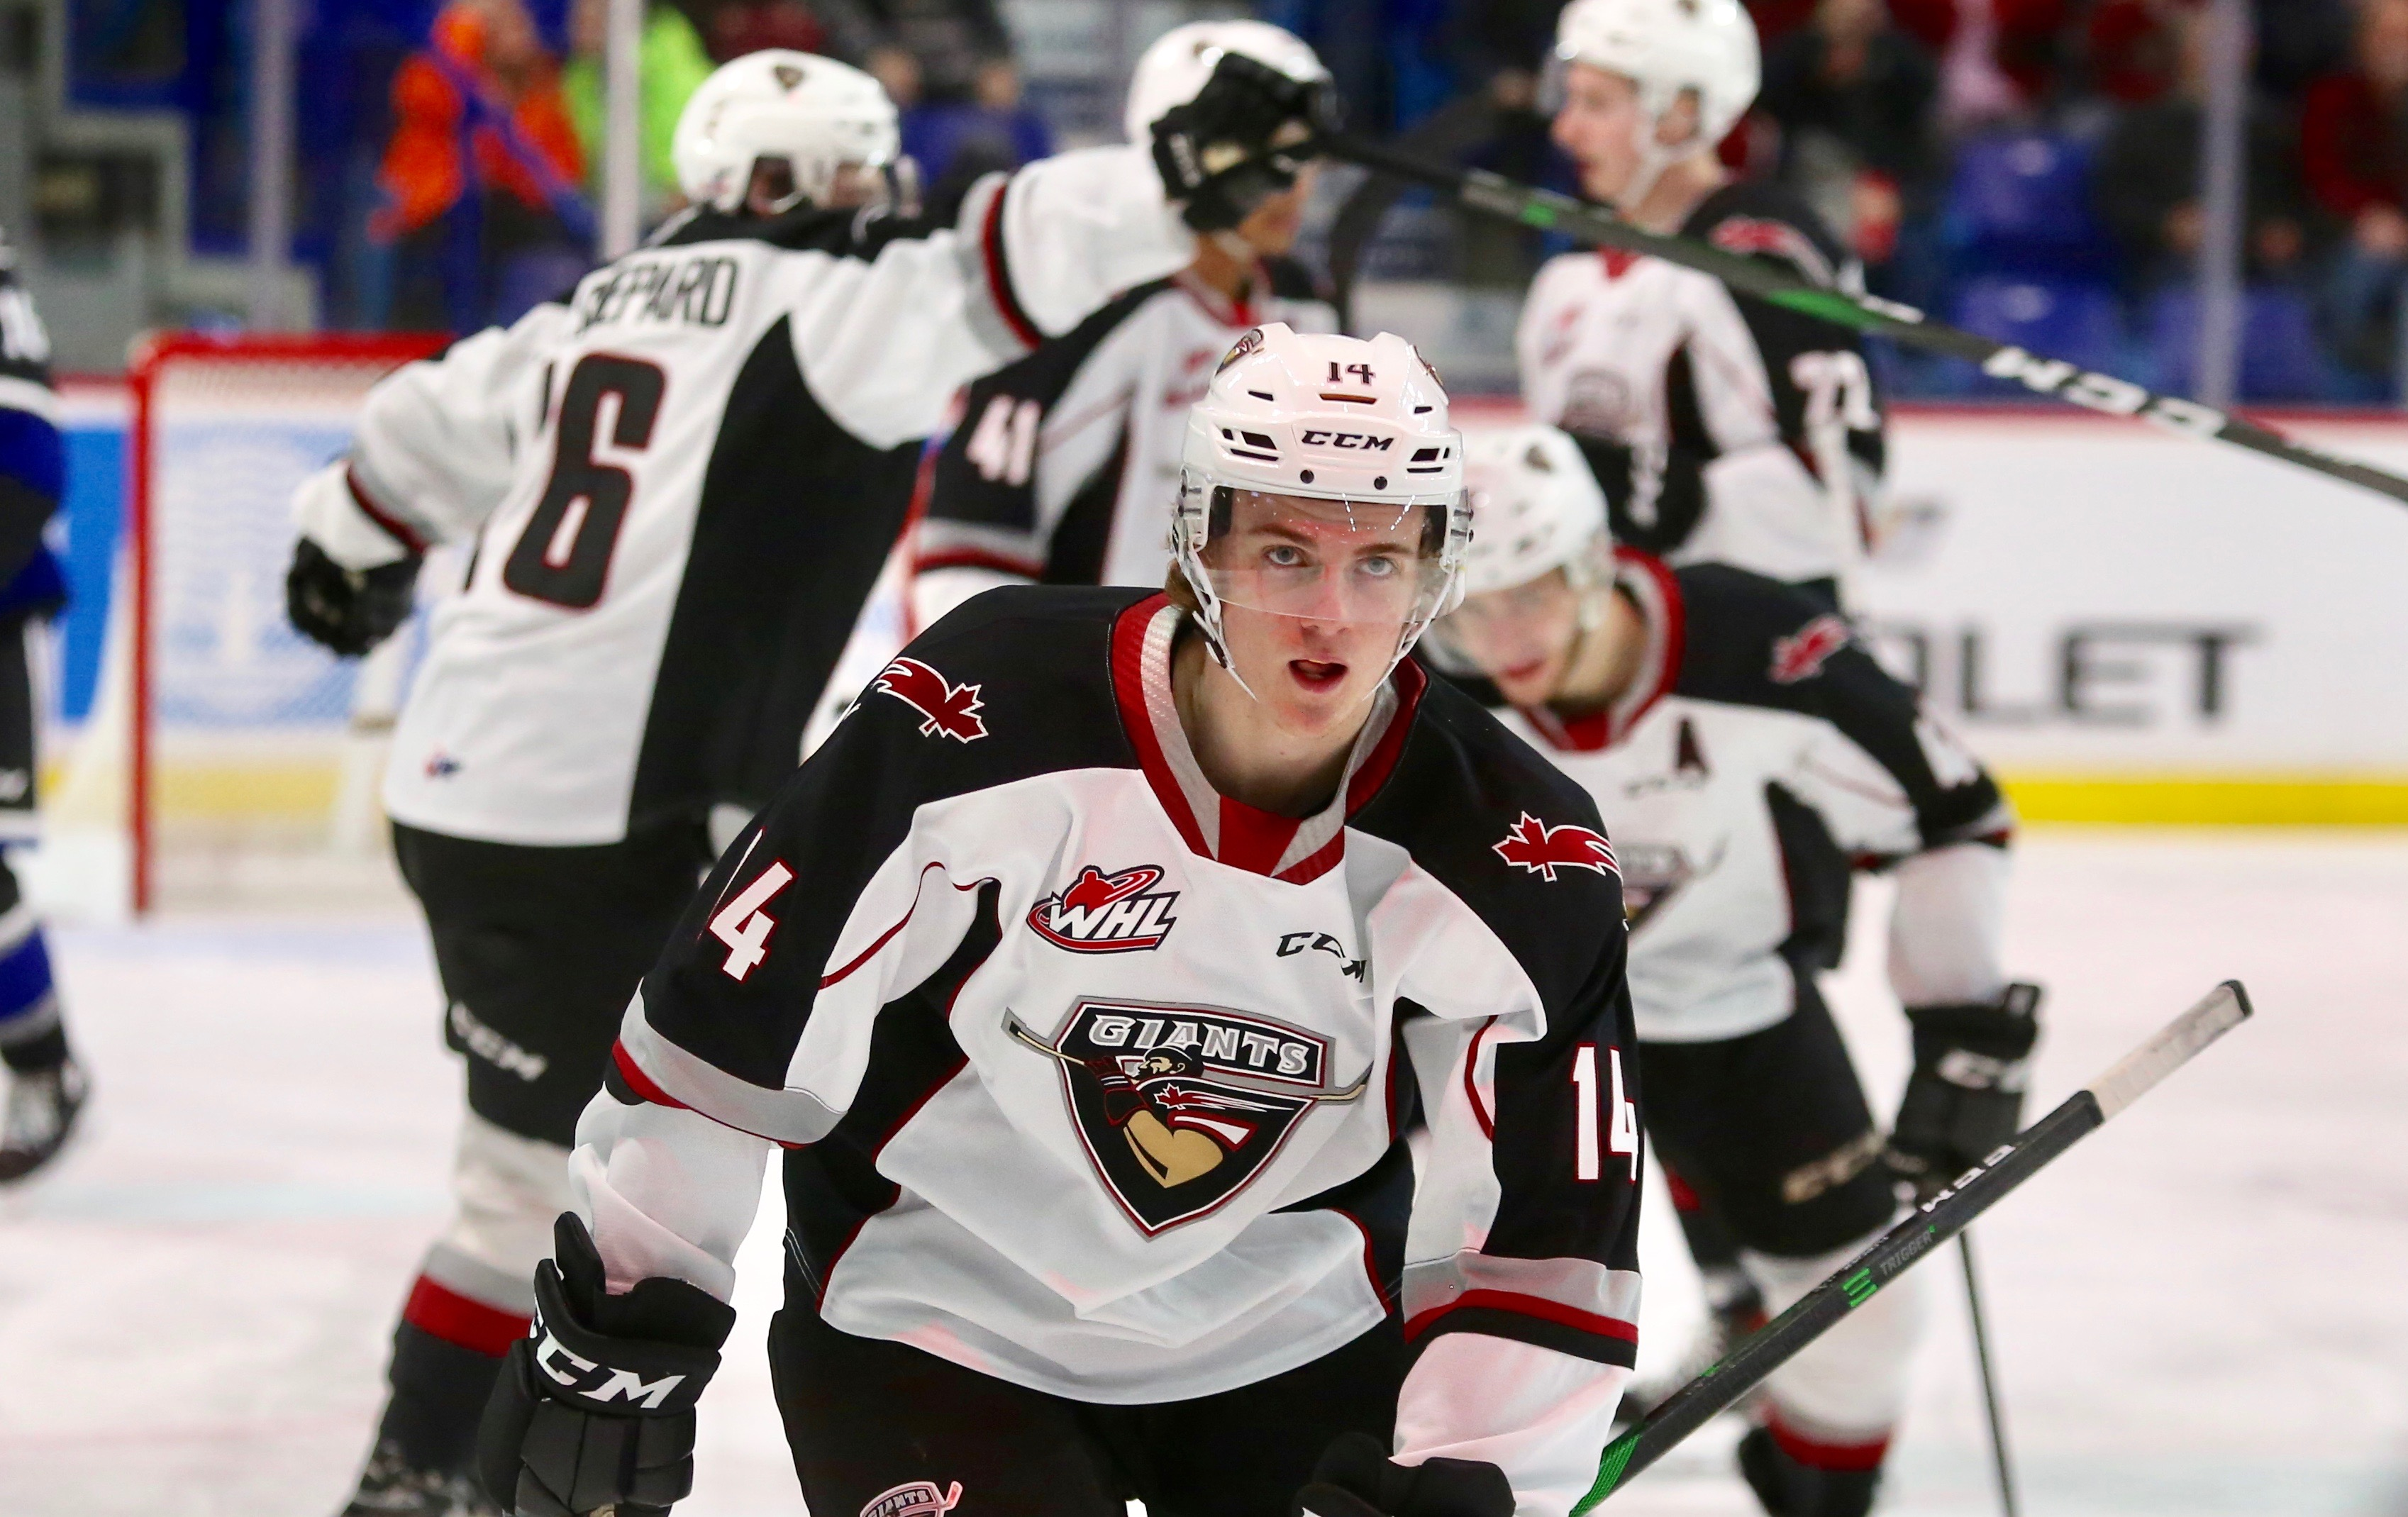 Florchuk's Hat-Trick Leads the Giants Over Royals 4-1.